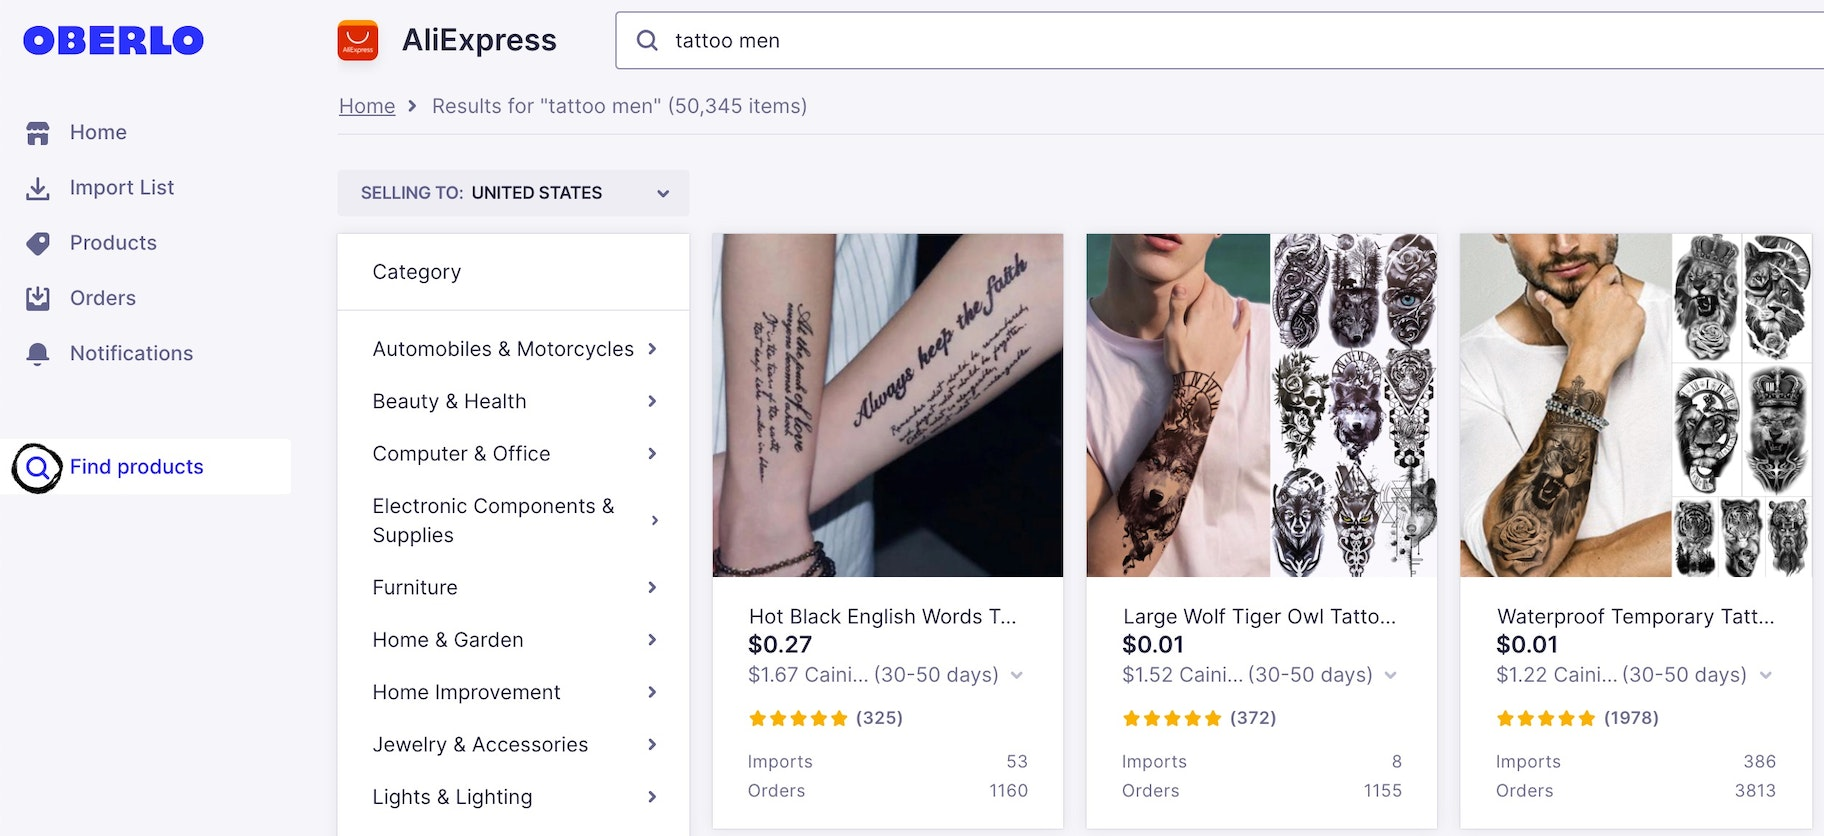 trending products 2021 tattoos